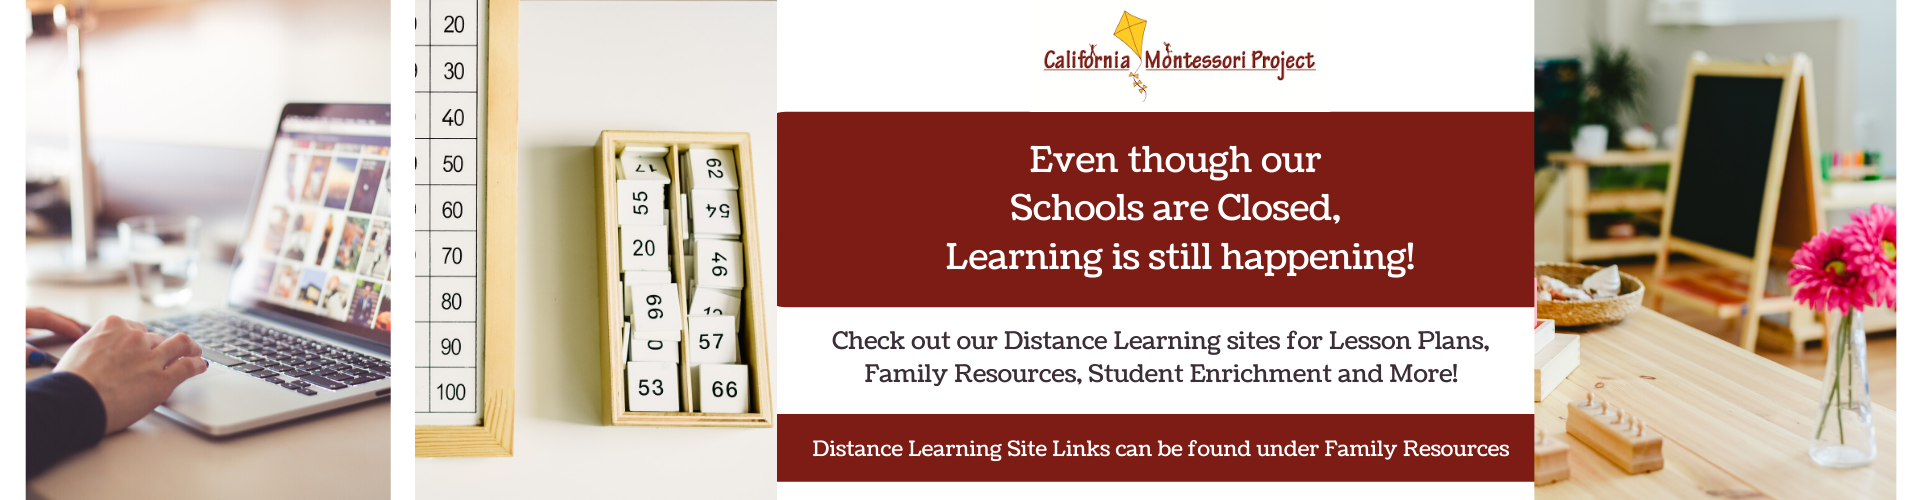 CMP is hosting Distance Learning. Even though our schools are closed, learning is still happening. Distance Learning Sites can be found under Family Resources.